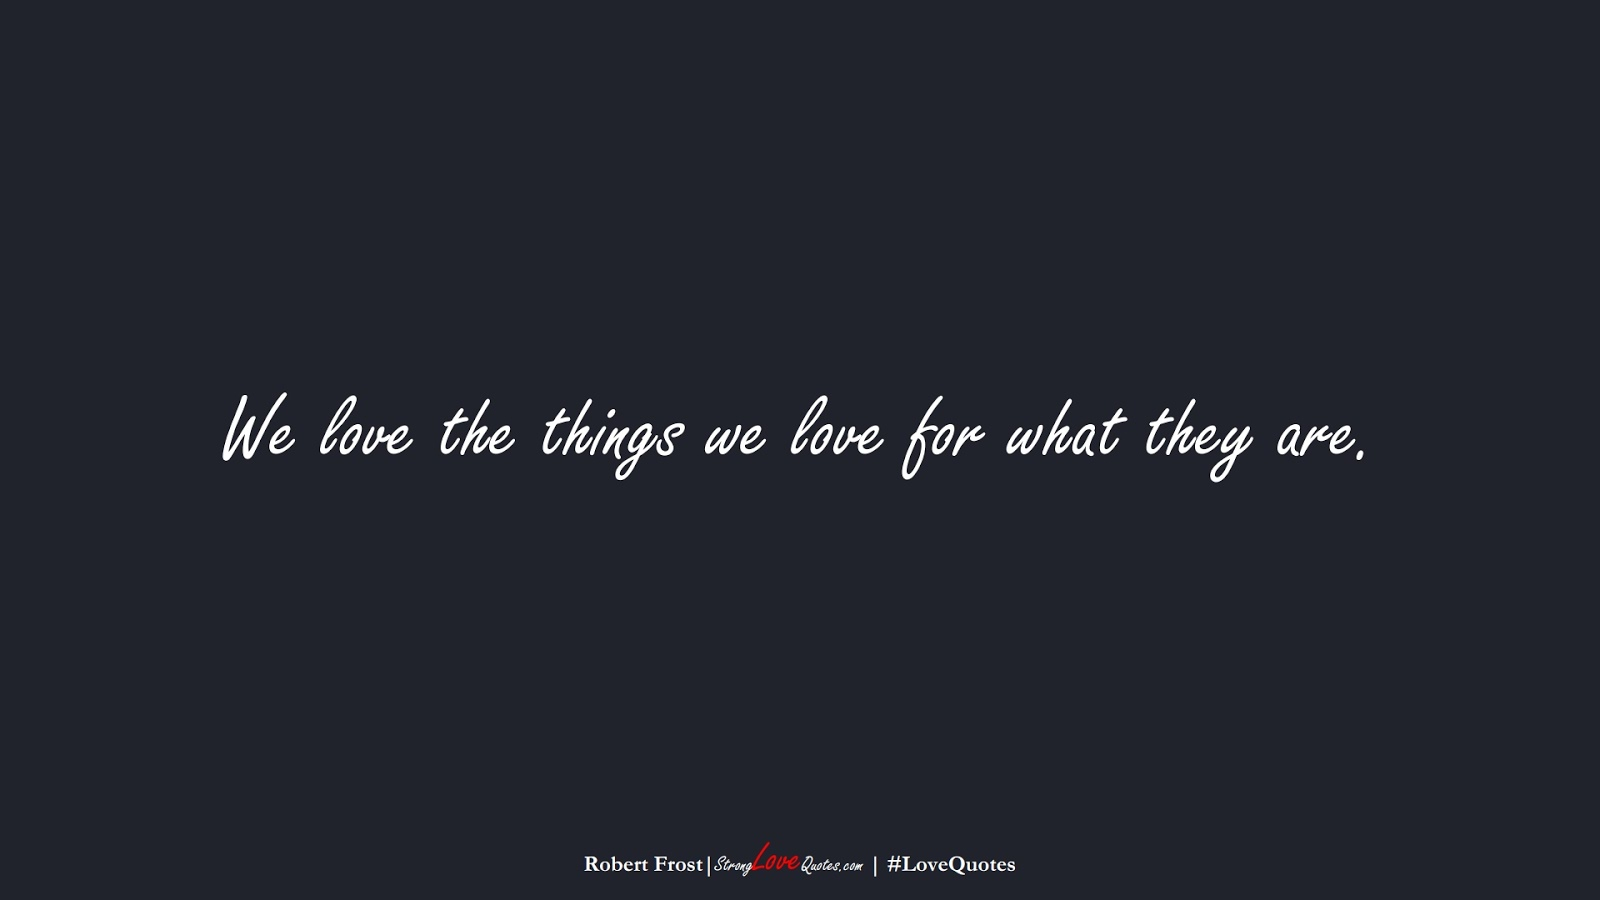 We love the things we love for what they are. (Robert Frost);  #LoveQuotes